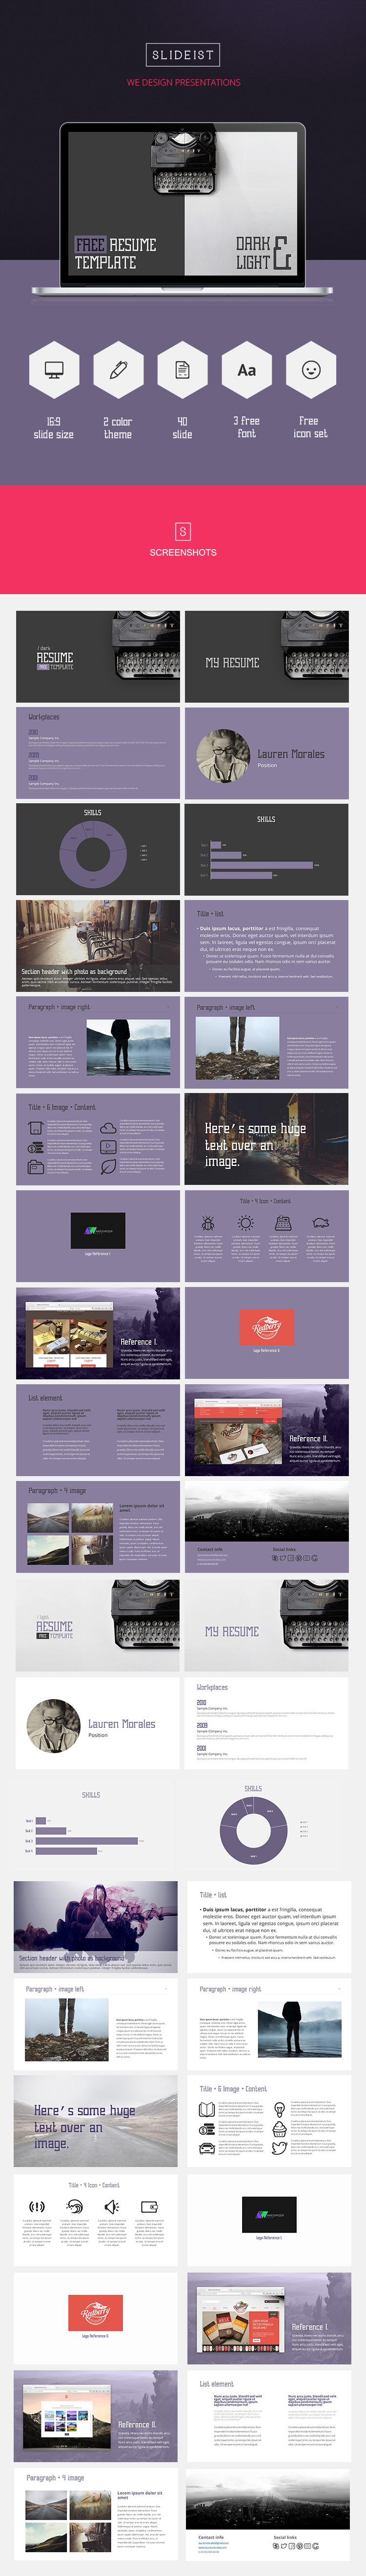 Powerpoint Resume Resume  Free Powerpoint Presentation Template  9  Web  Ui  Ux